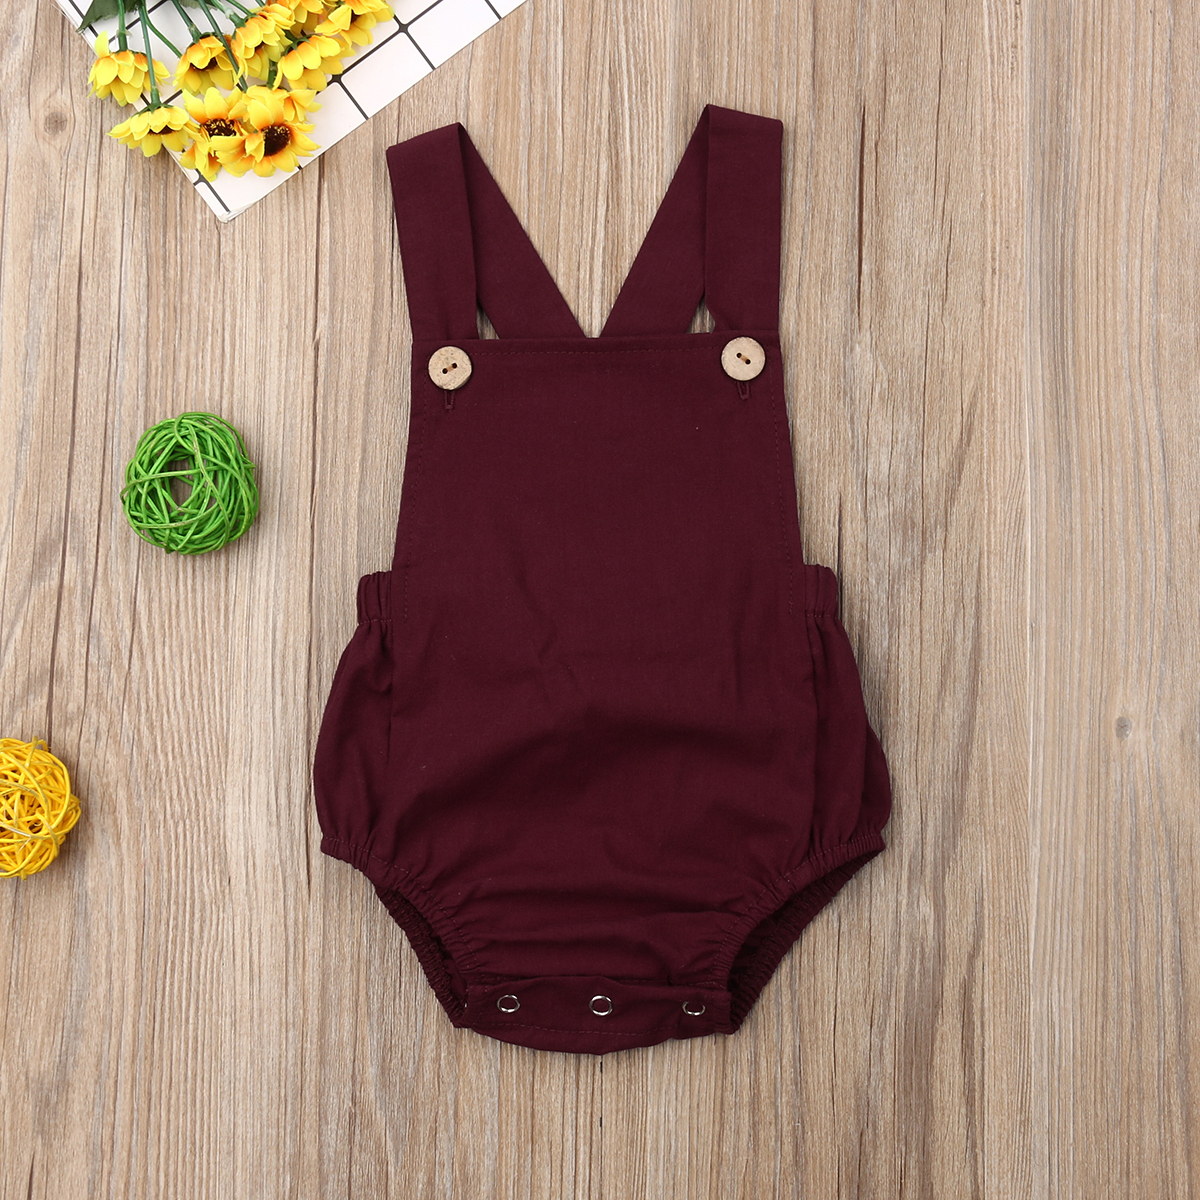 Pudcoco Newborn Baby Boy Girl Clothes Solid Color Sleeveless Button Cotton   Romper   Jumpsuit One-Piece Outfit Sunsuit Clothes